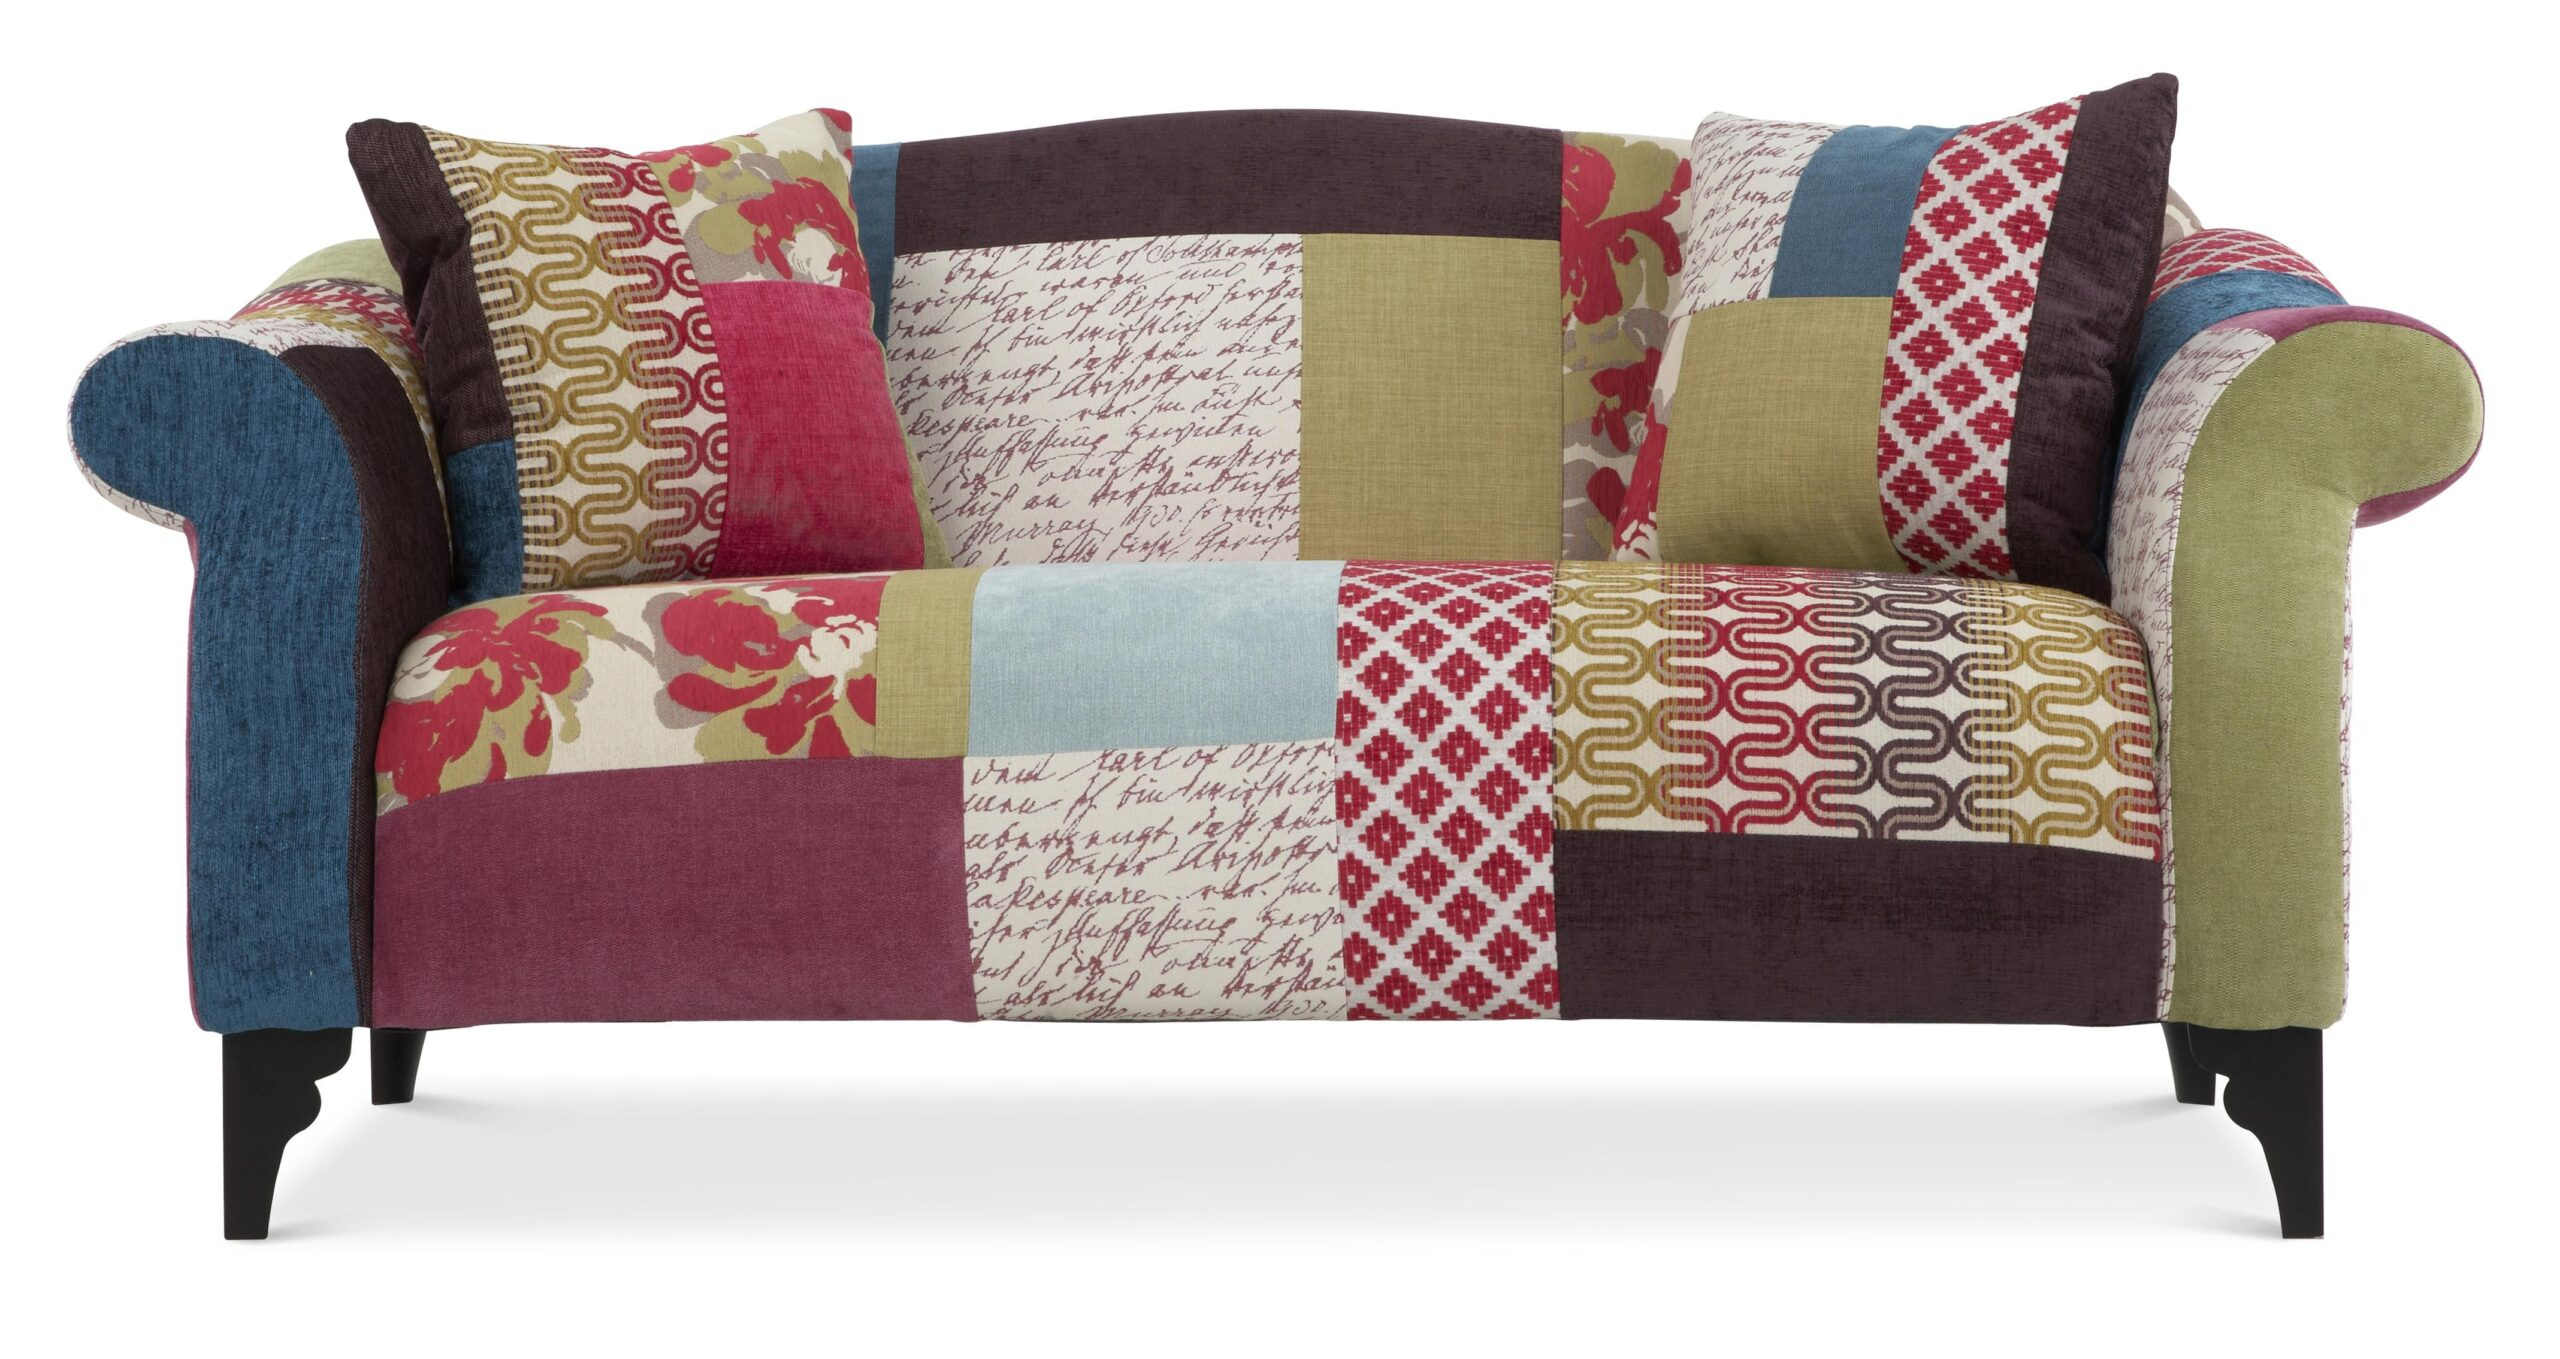 Full Size of Sofa Patchwork Malaysia Bed Ireland Diy Cover Slipcovers Dfs For Sale Nothing Can Be Like A 2 Sitzer Mit Schlaffunktion Garnitur Zweisitzer Bezug Ecksofa Sofa Sofa Patchwork